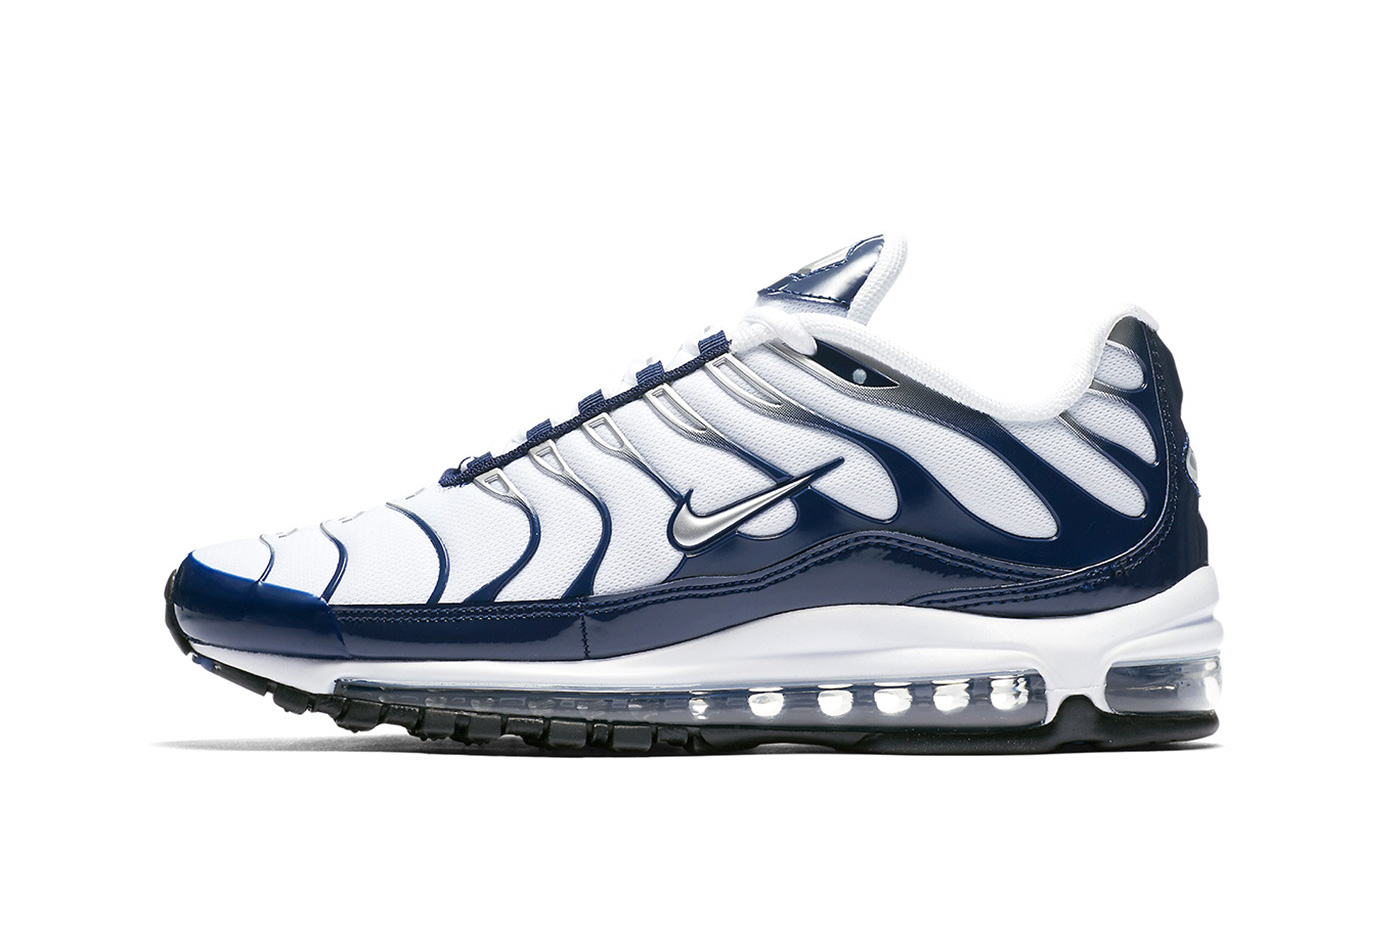 Nike Air Max 97/Plus Navy/Metallic Silver 2018 nike sportswear footwear air max plus air max 97